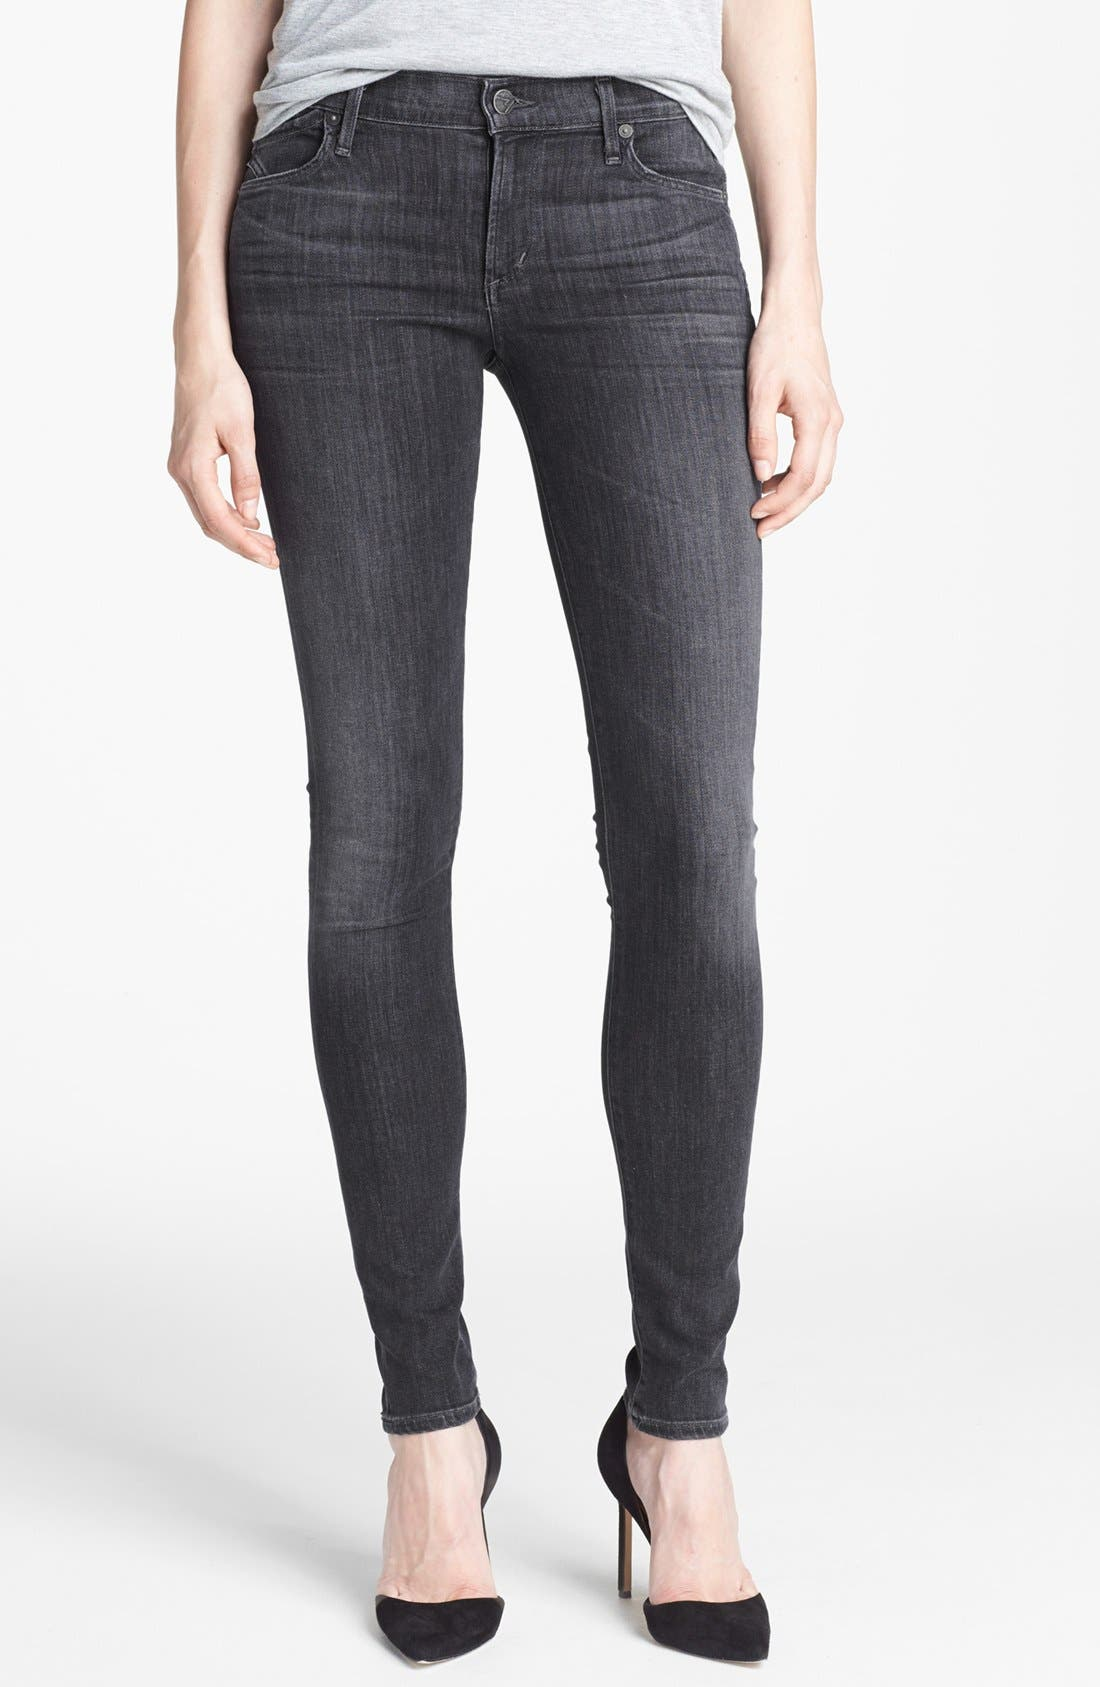 Alternate Image 1 Selected - Citizens of Humanity Ultra Skinny Jeans (Moonshadow)